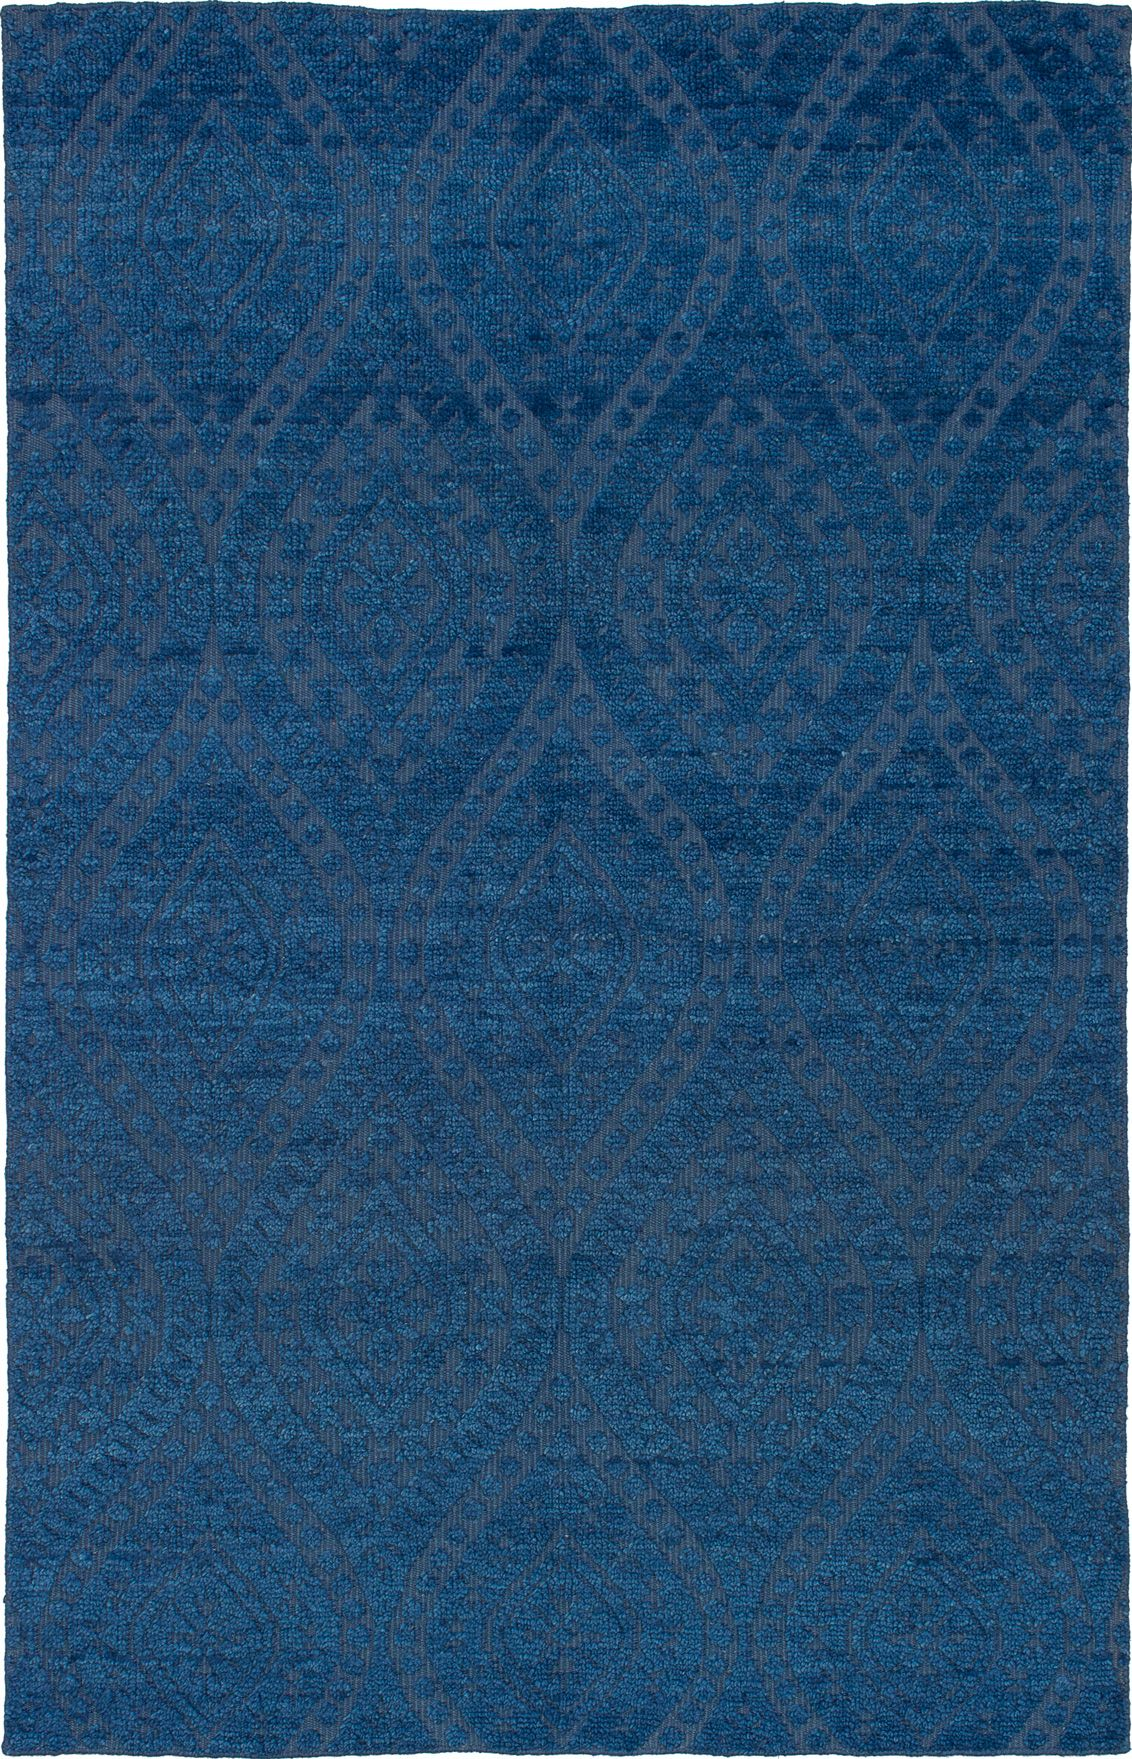 """Hand-knotted Eternity Blue Wool Rug 5'0"""" x 7'10"""" Size: 5'0"""" x 7'10"""""""